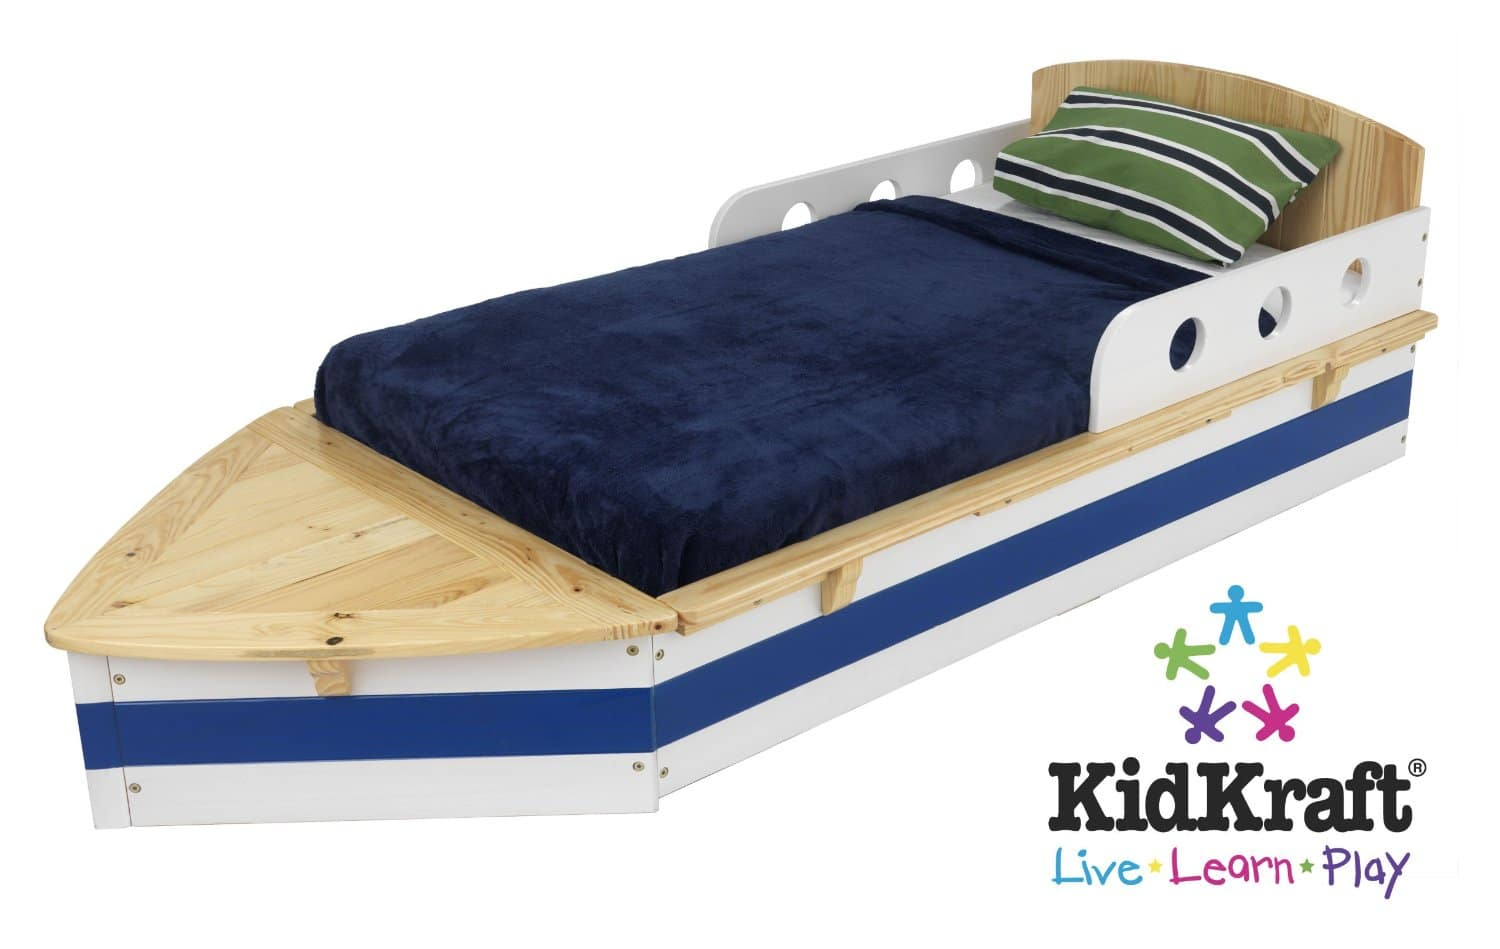 Comprehensive Review Of The KidKraft Boat Toddler Bed